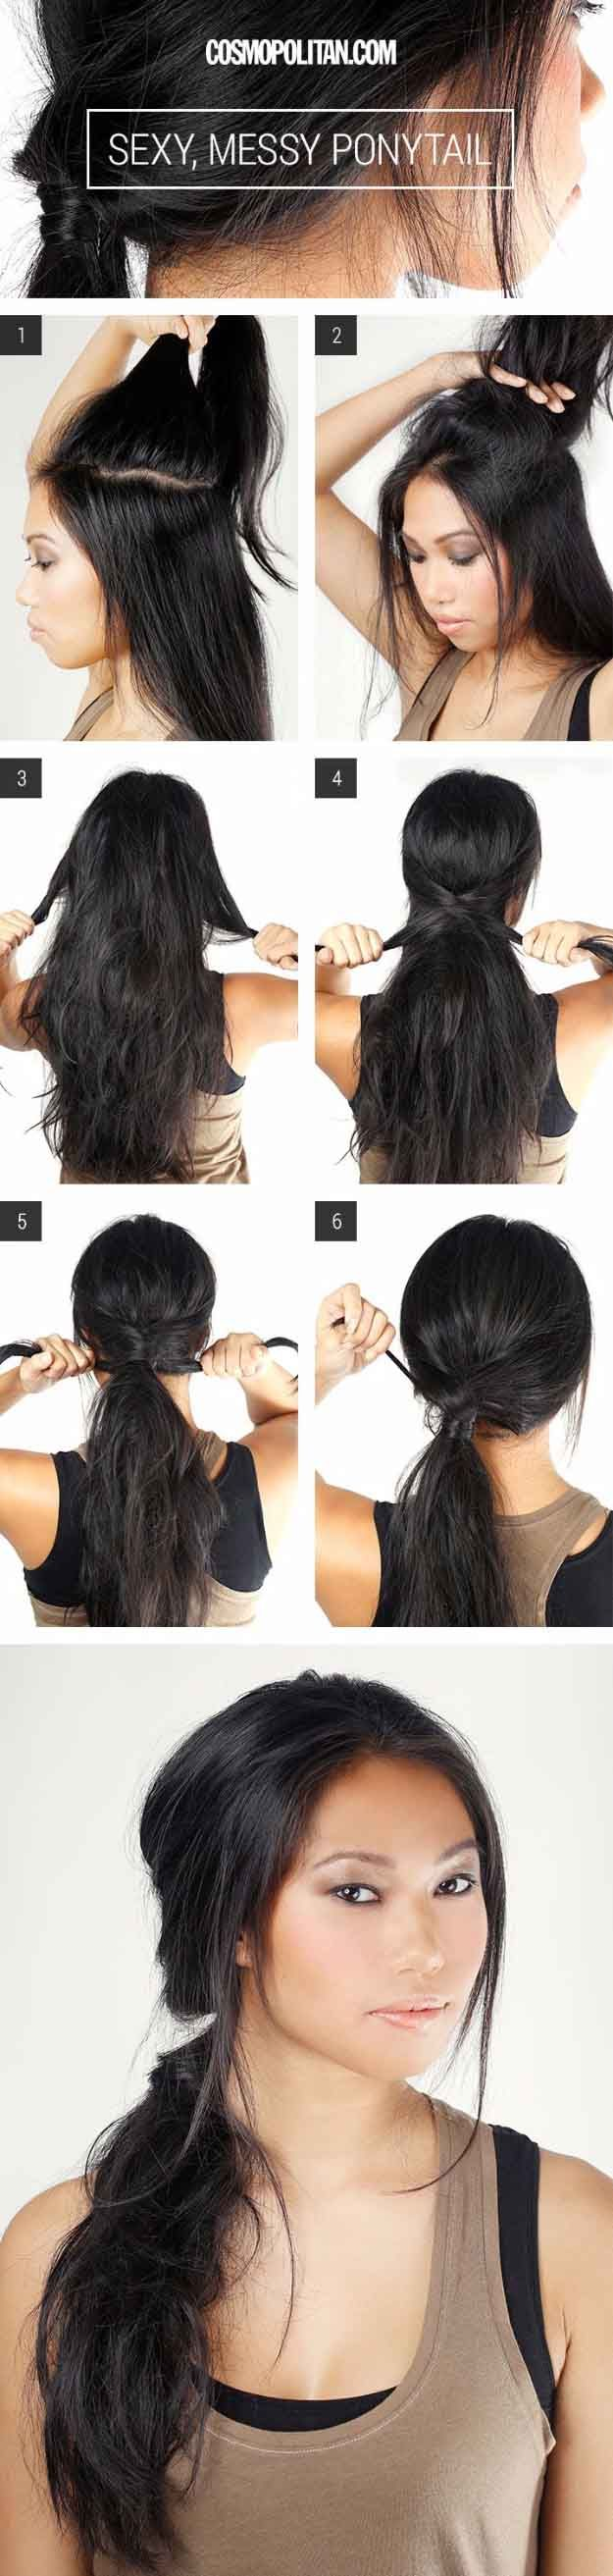 Glam Ponytail Tutorials - Sexy, Messy Ponytail- Simple Hairstyles and Pony Tails, Messy Buns, Dutch Braids and Top Knot Updo Looks - With and Without Bobby Pins - Awesome Looks for Short Hair and Girls with Curls - thegoddess.com/glam-ponytail-tutorials